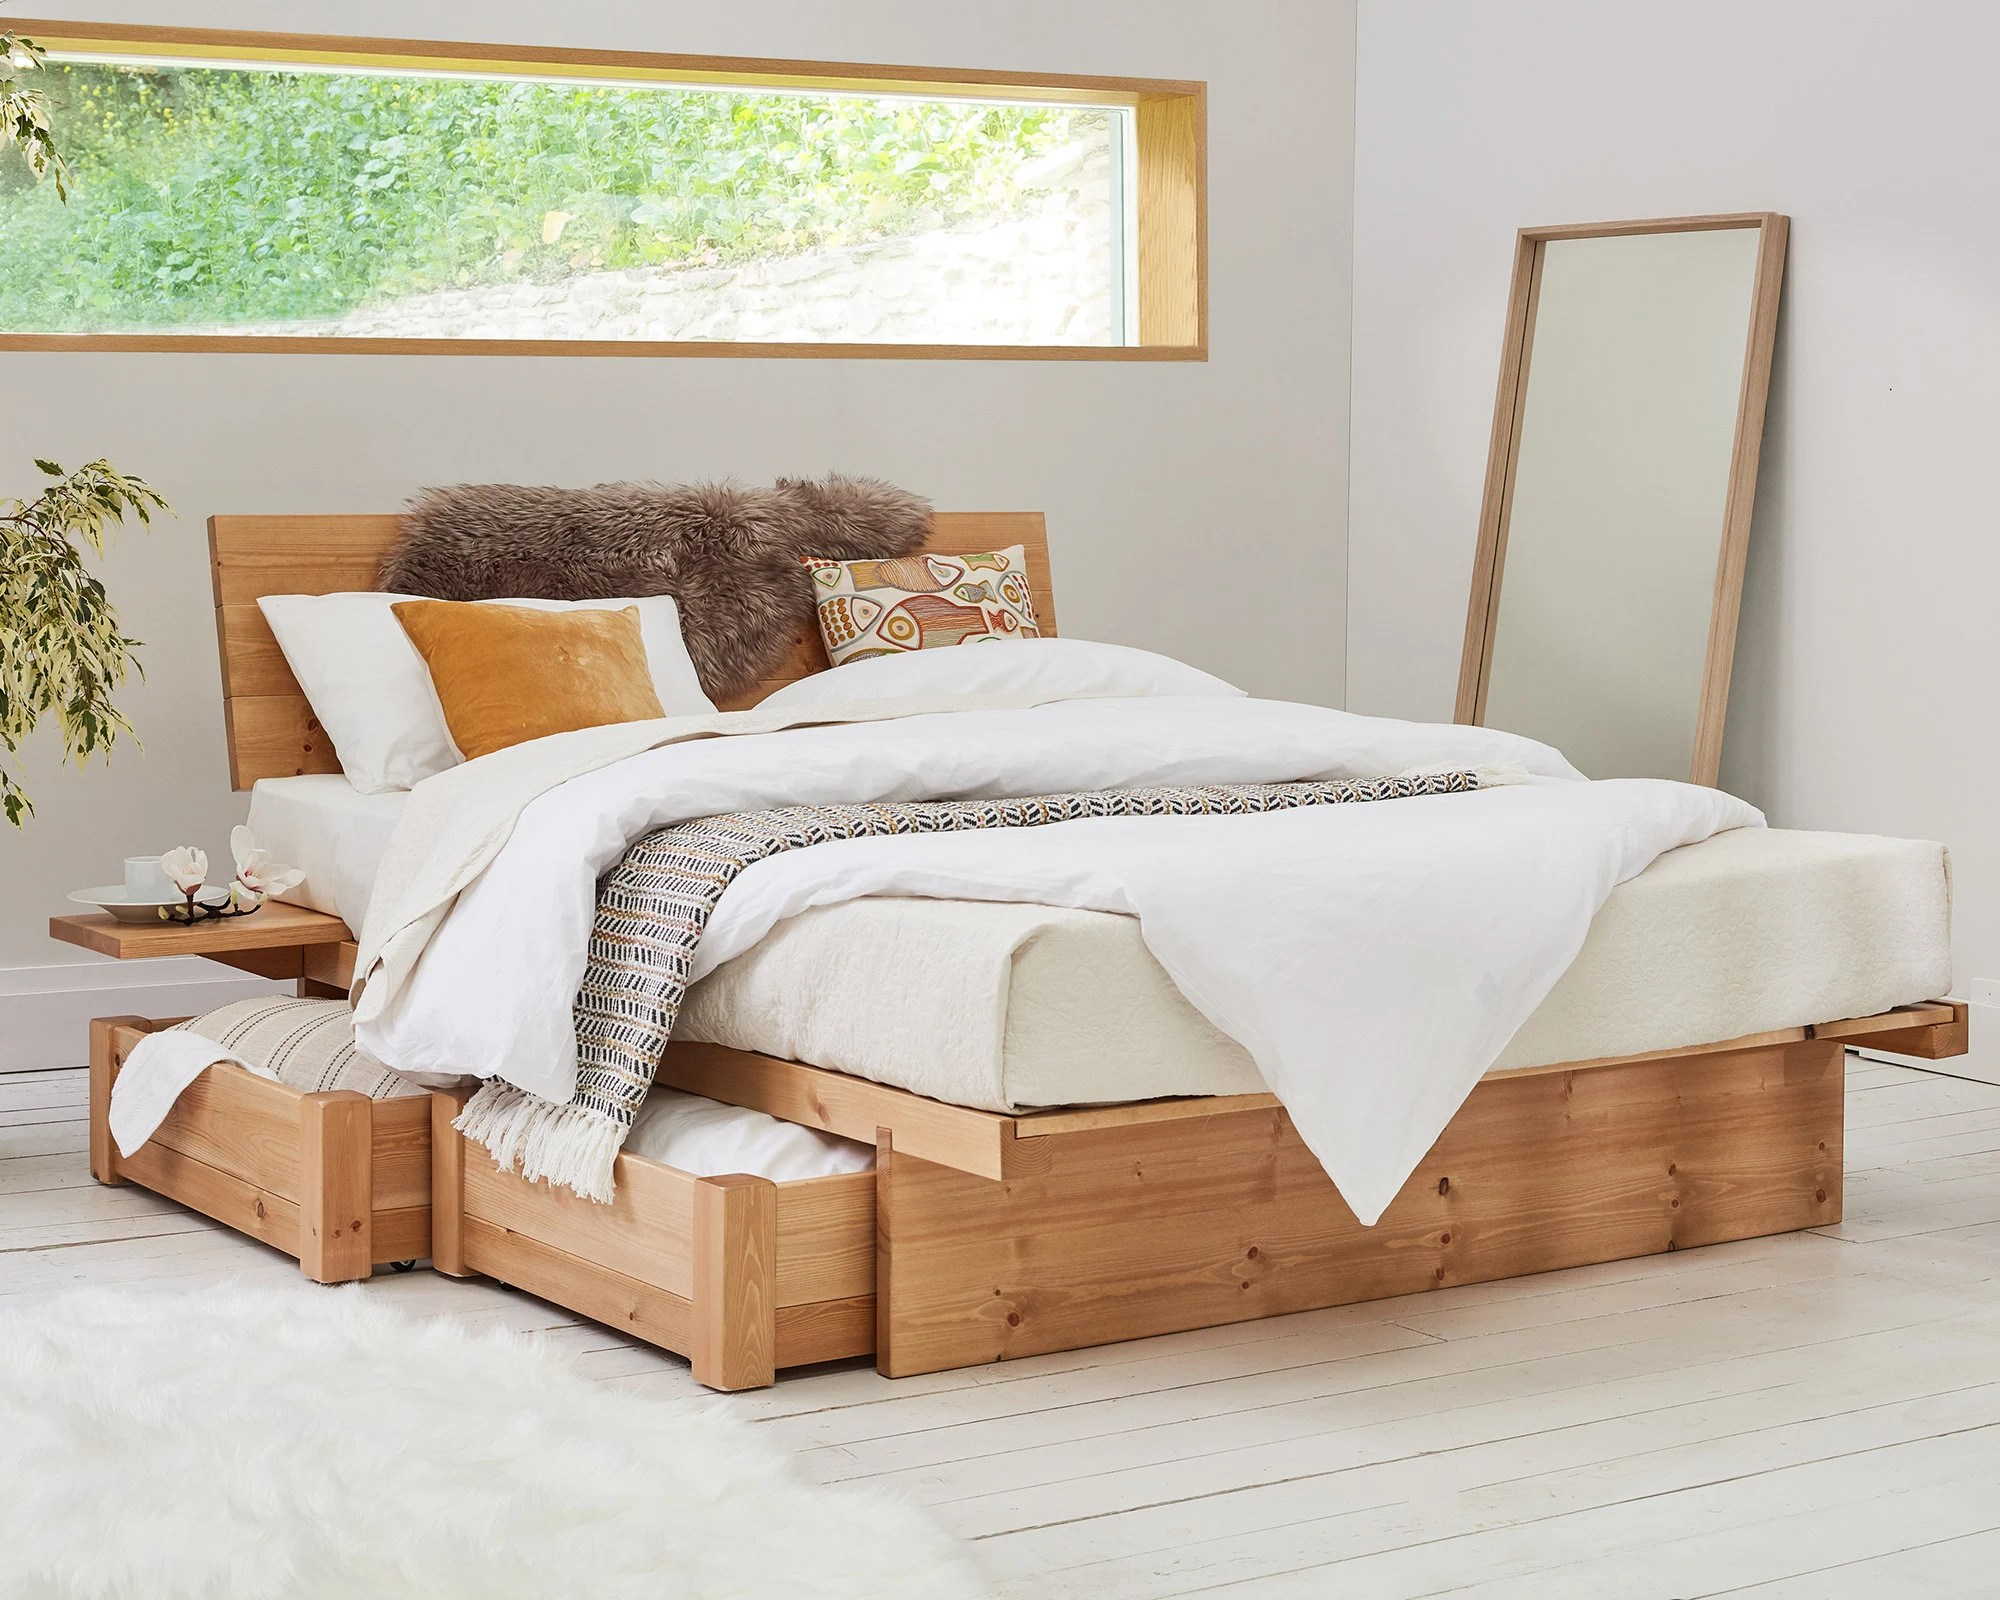 Wooden Beds Japanese Wooden Bed Frame By Get Laid Beds